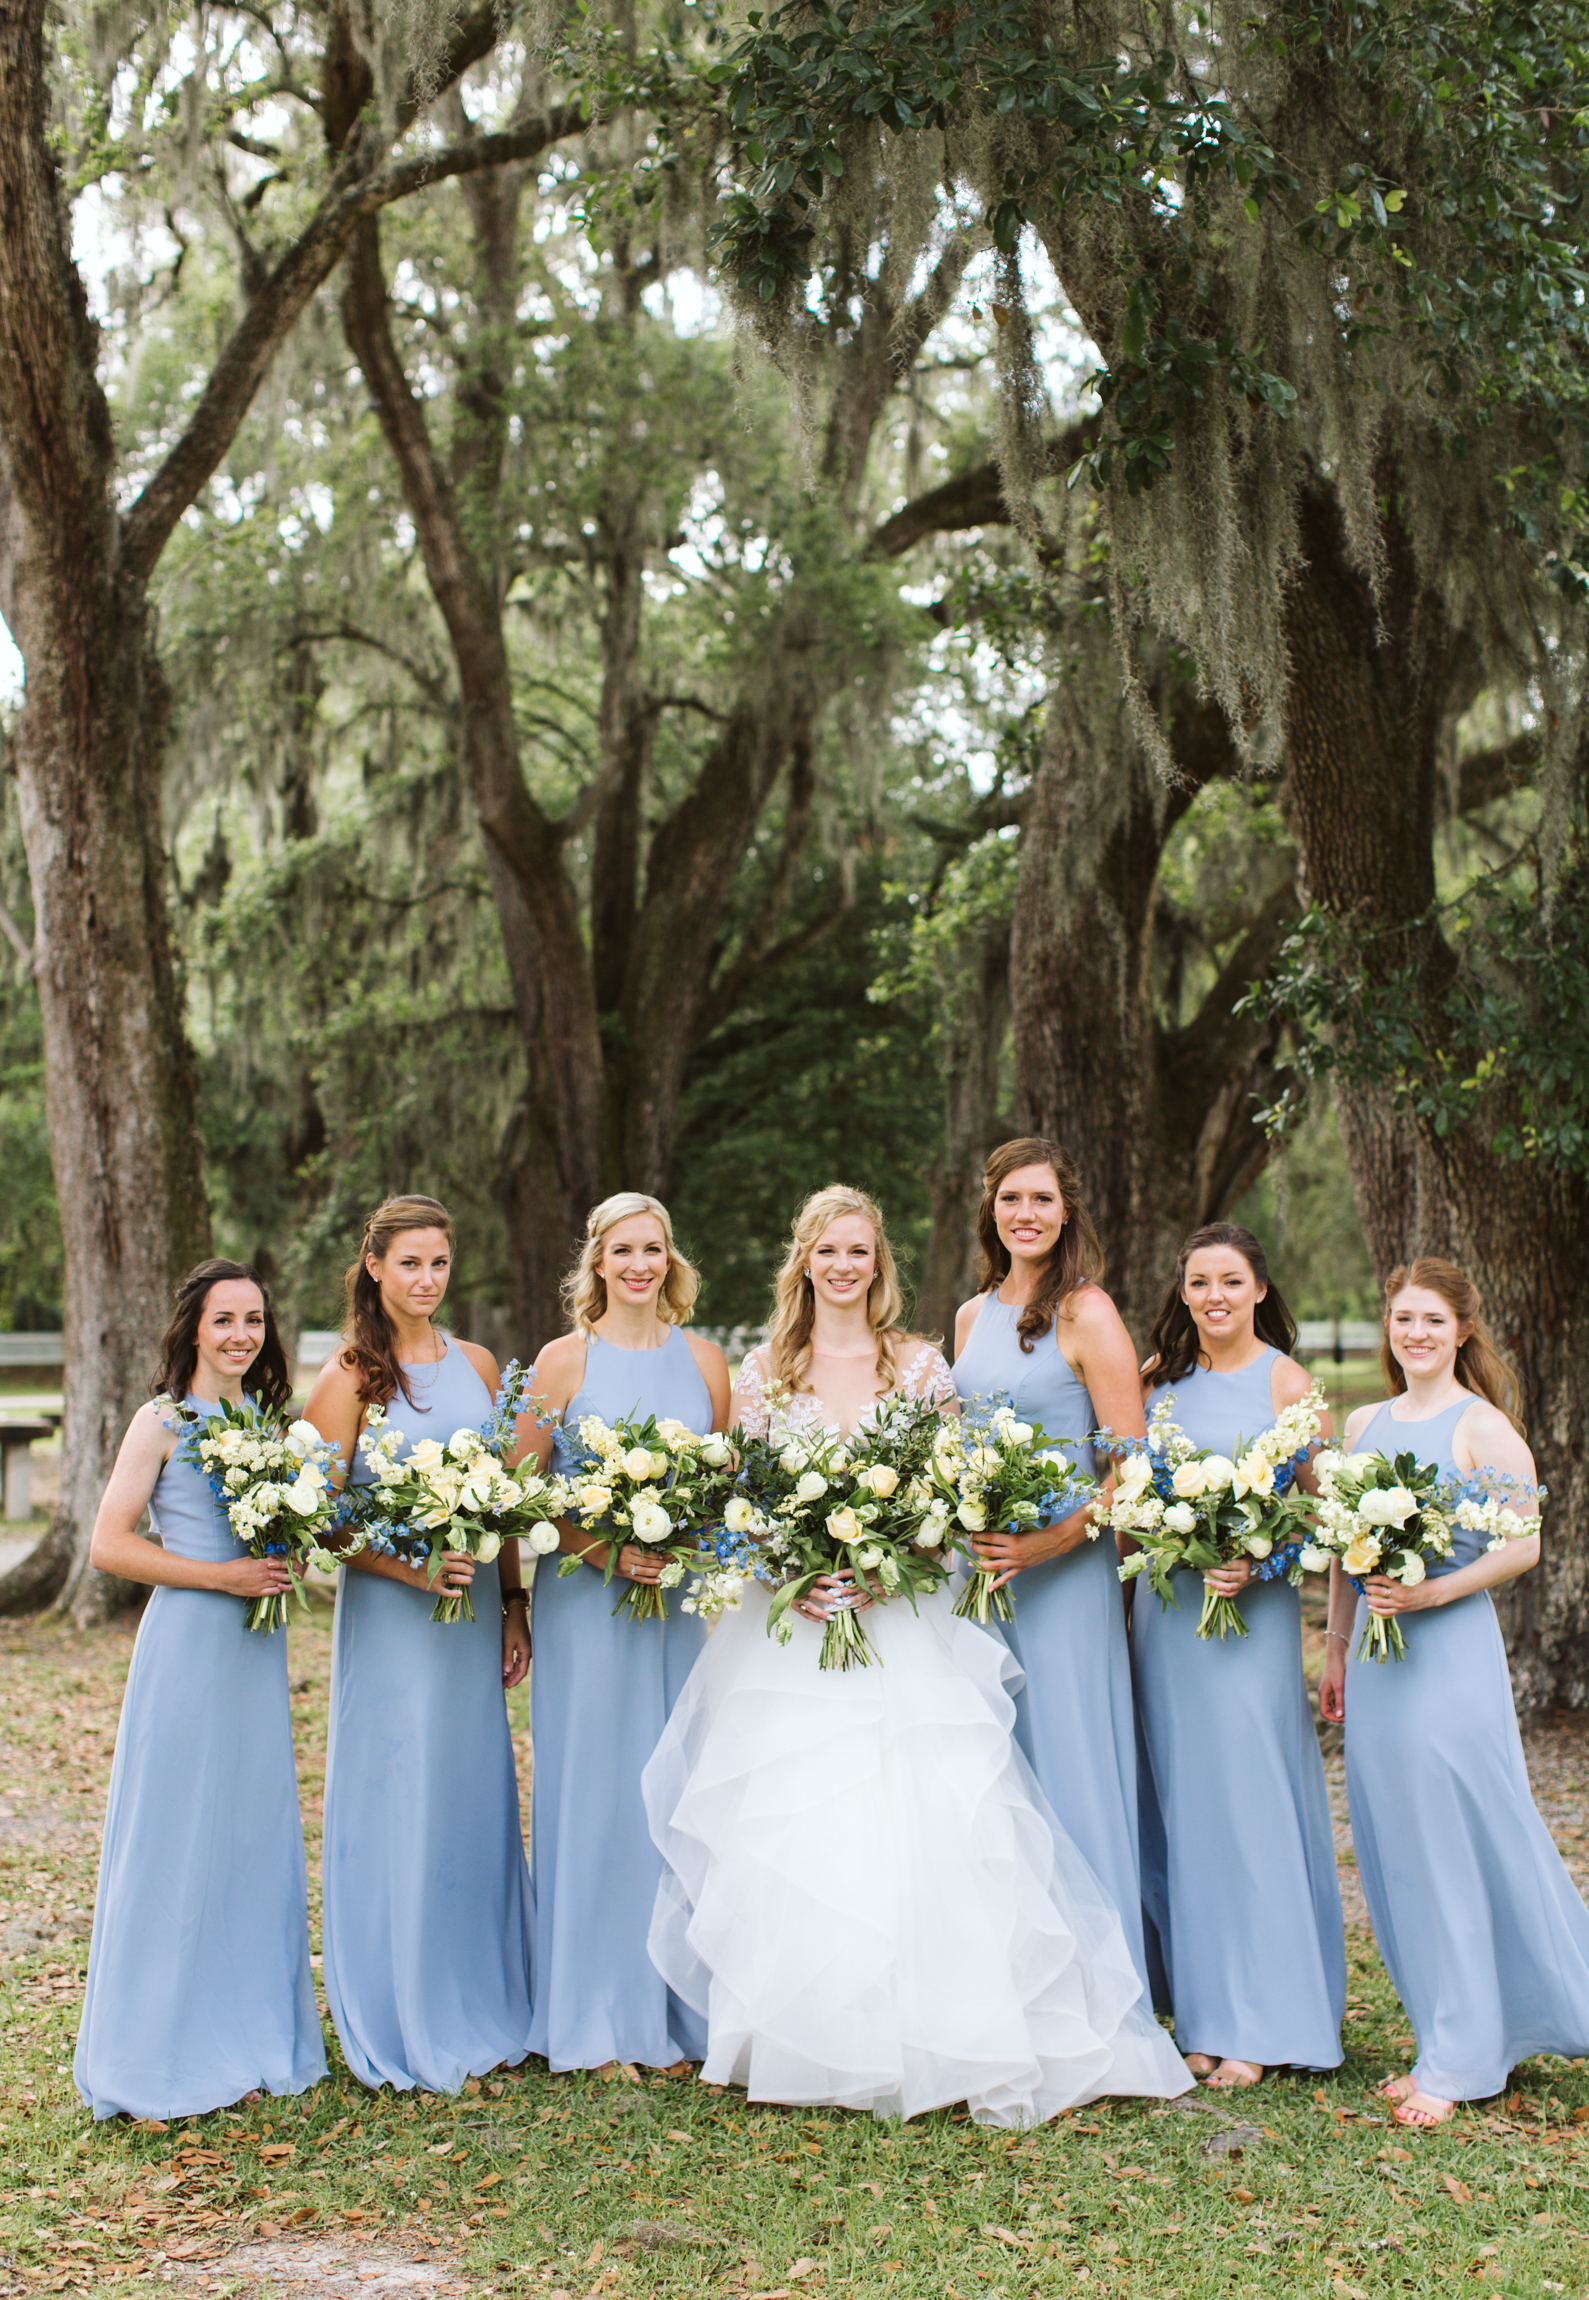 Middleton Place Charleston SC wedding-3125.jpg